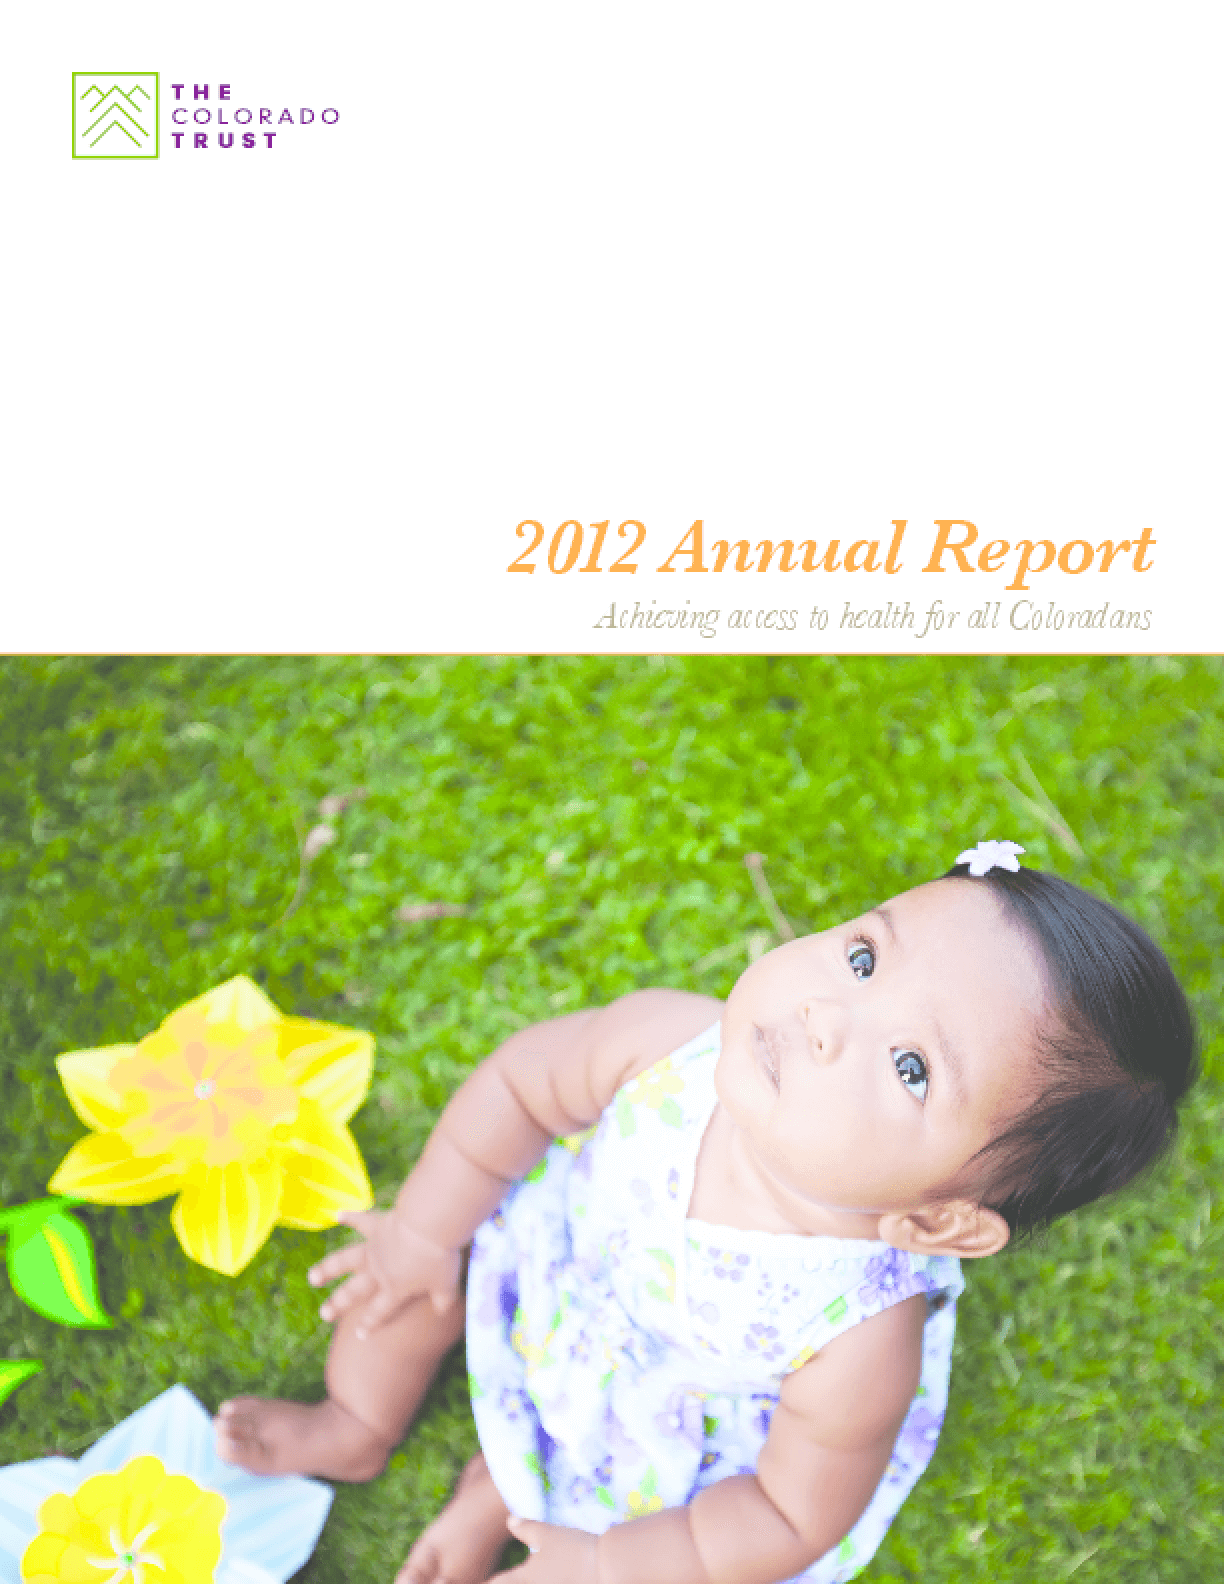 2012 Annual Report: Achieving Access to Health for All Coloradans